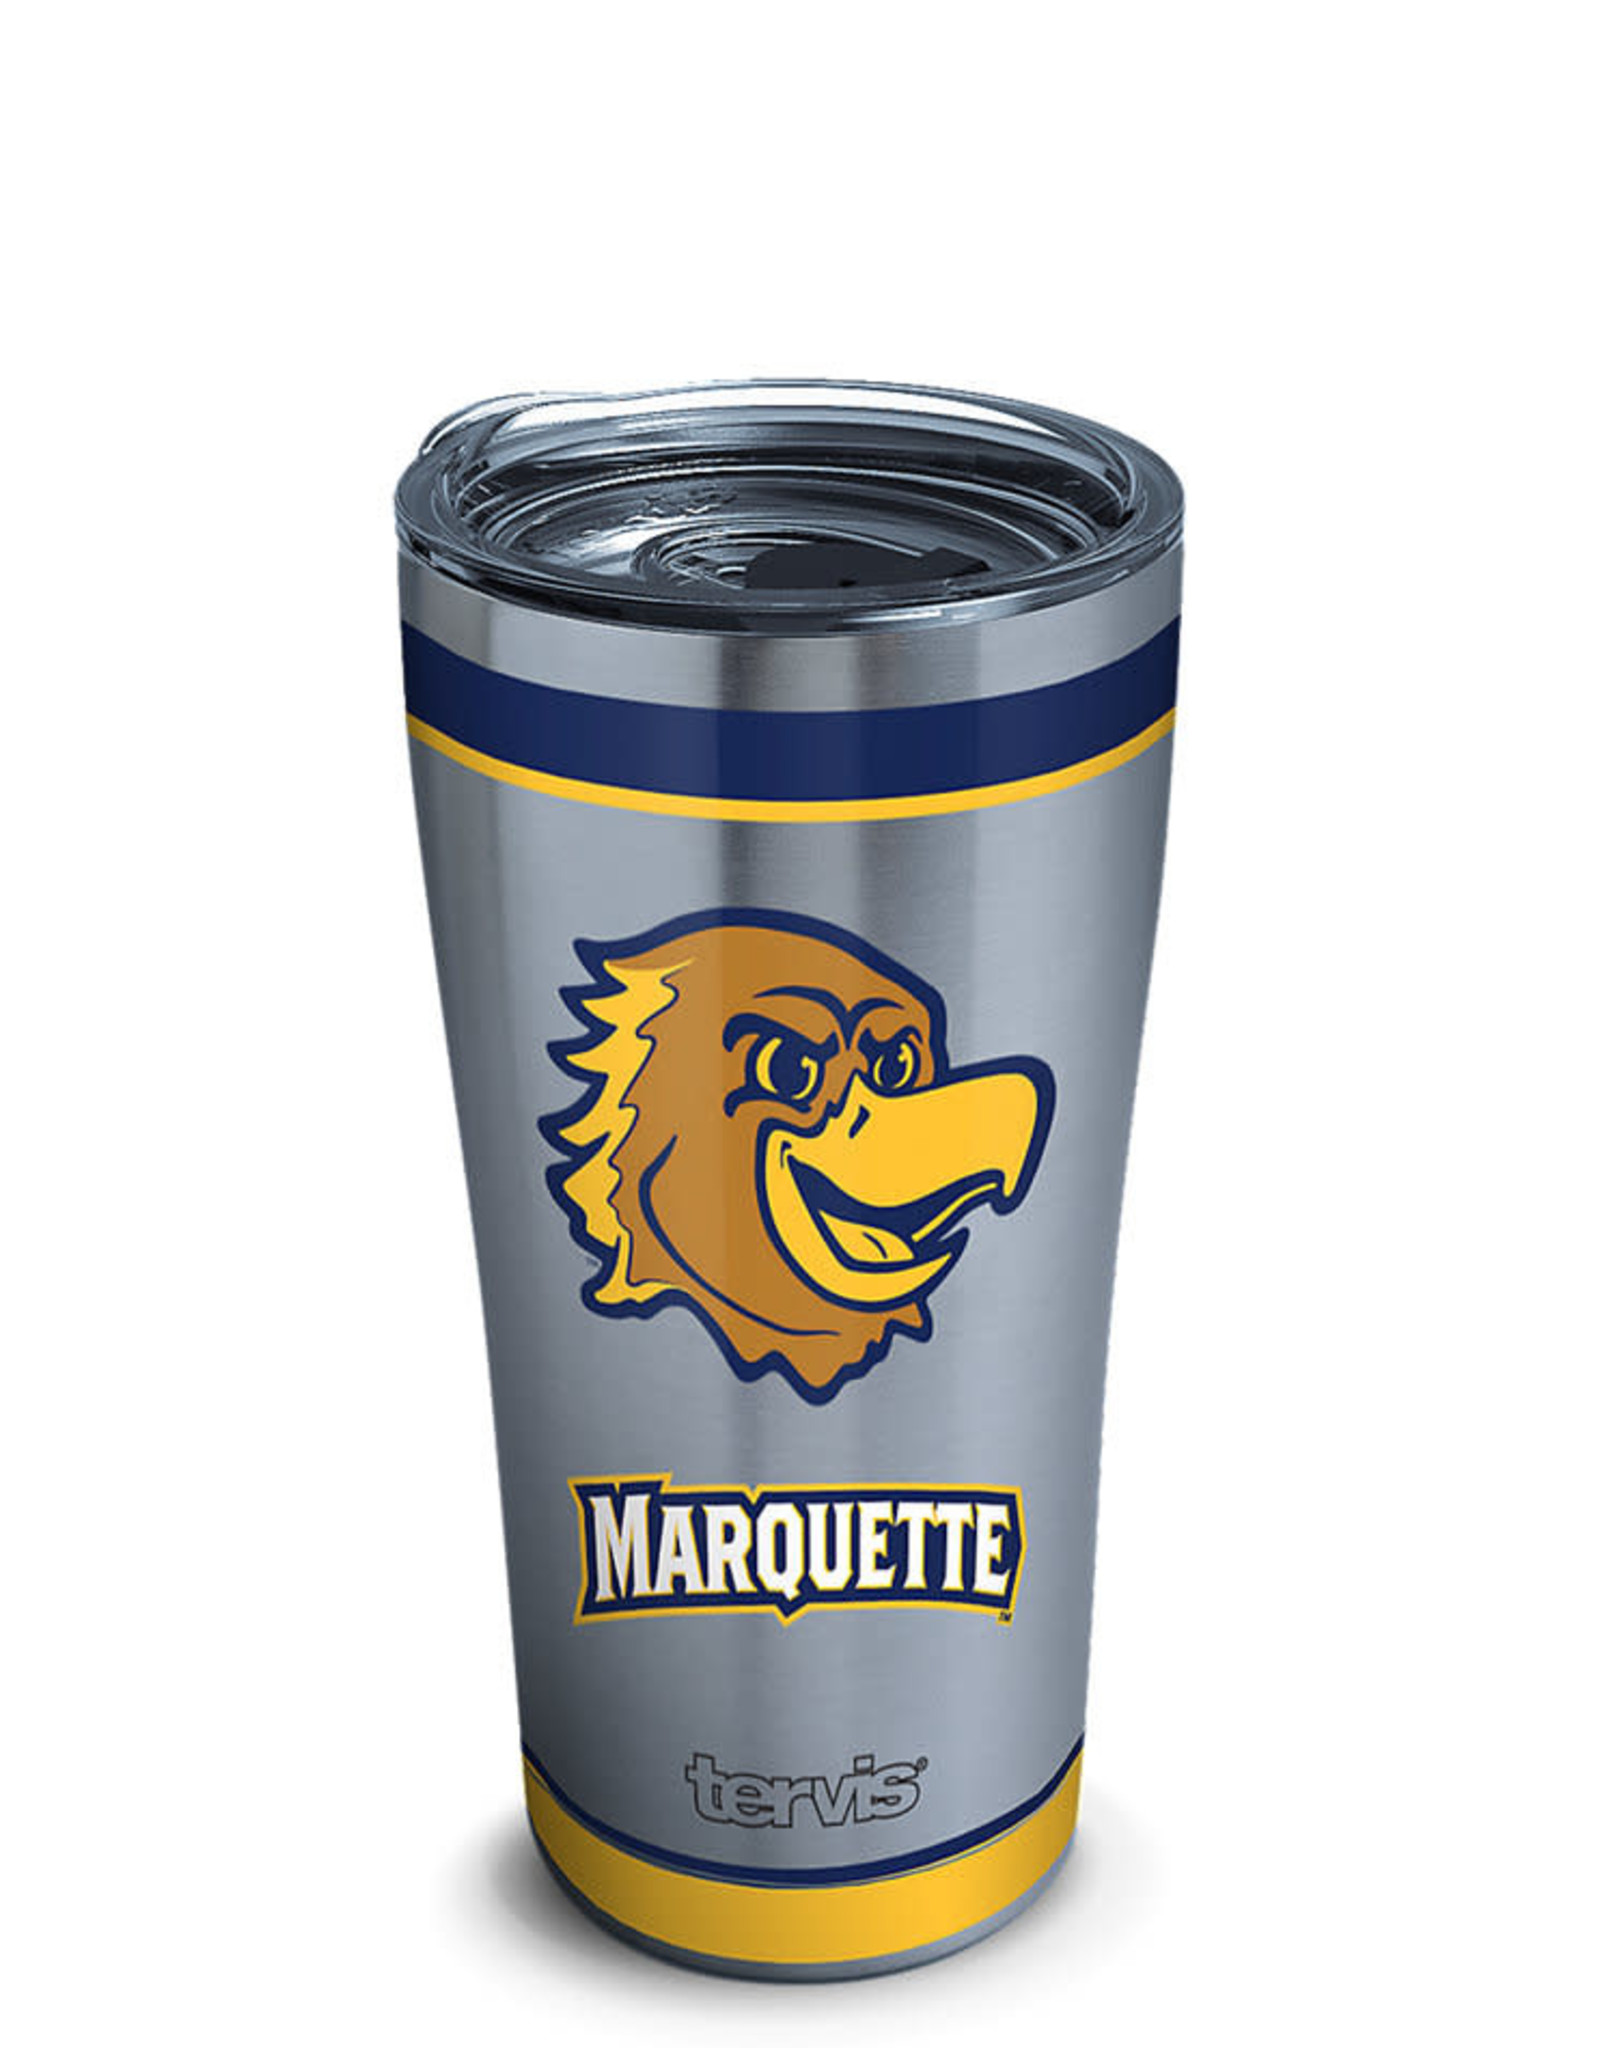 Tervis Tumbler 20oz Marquette Stainless